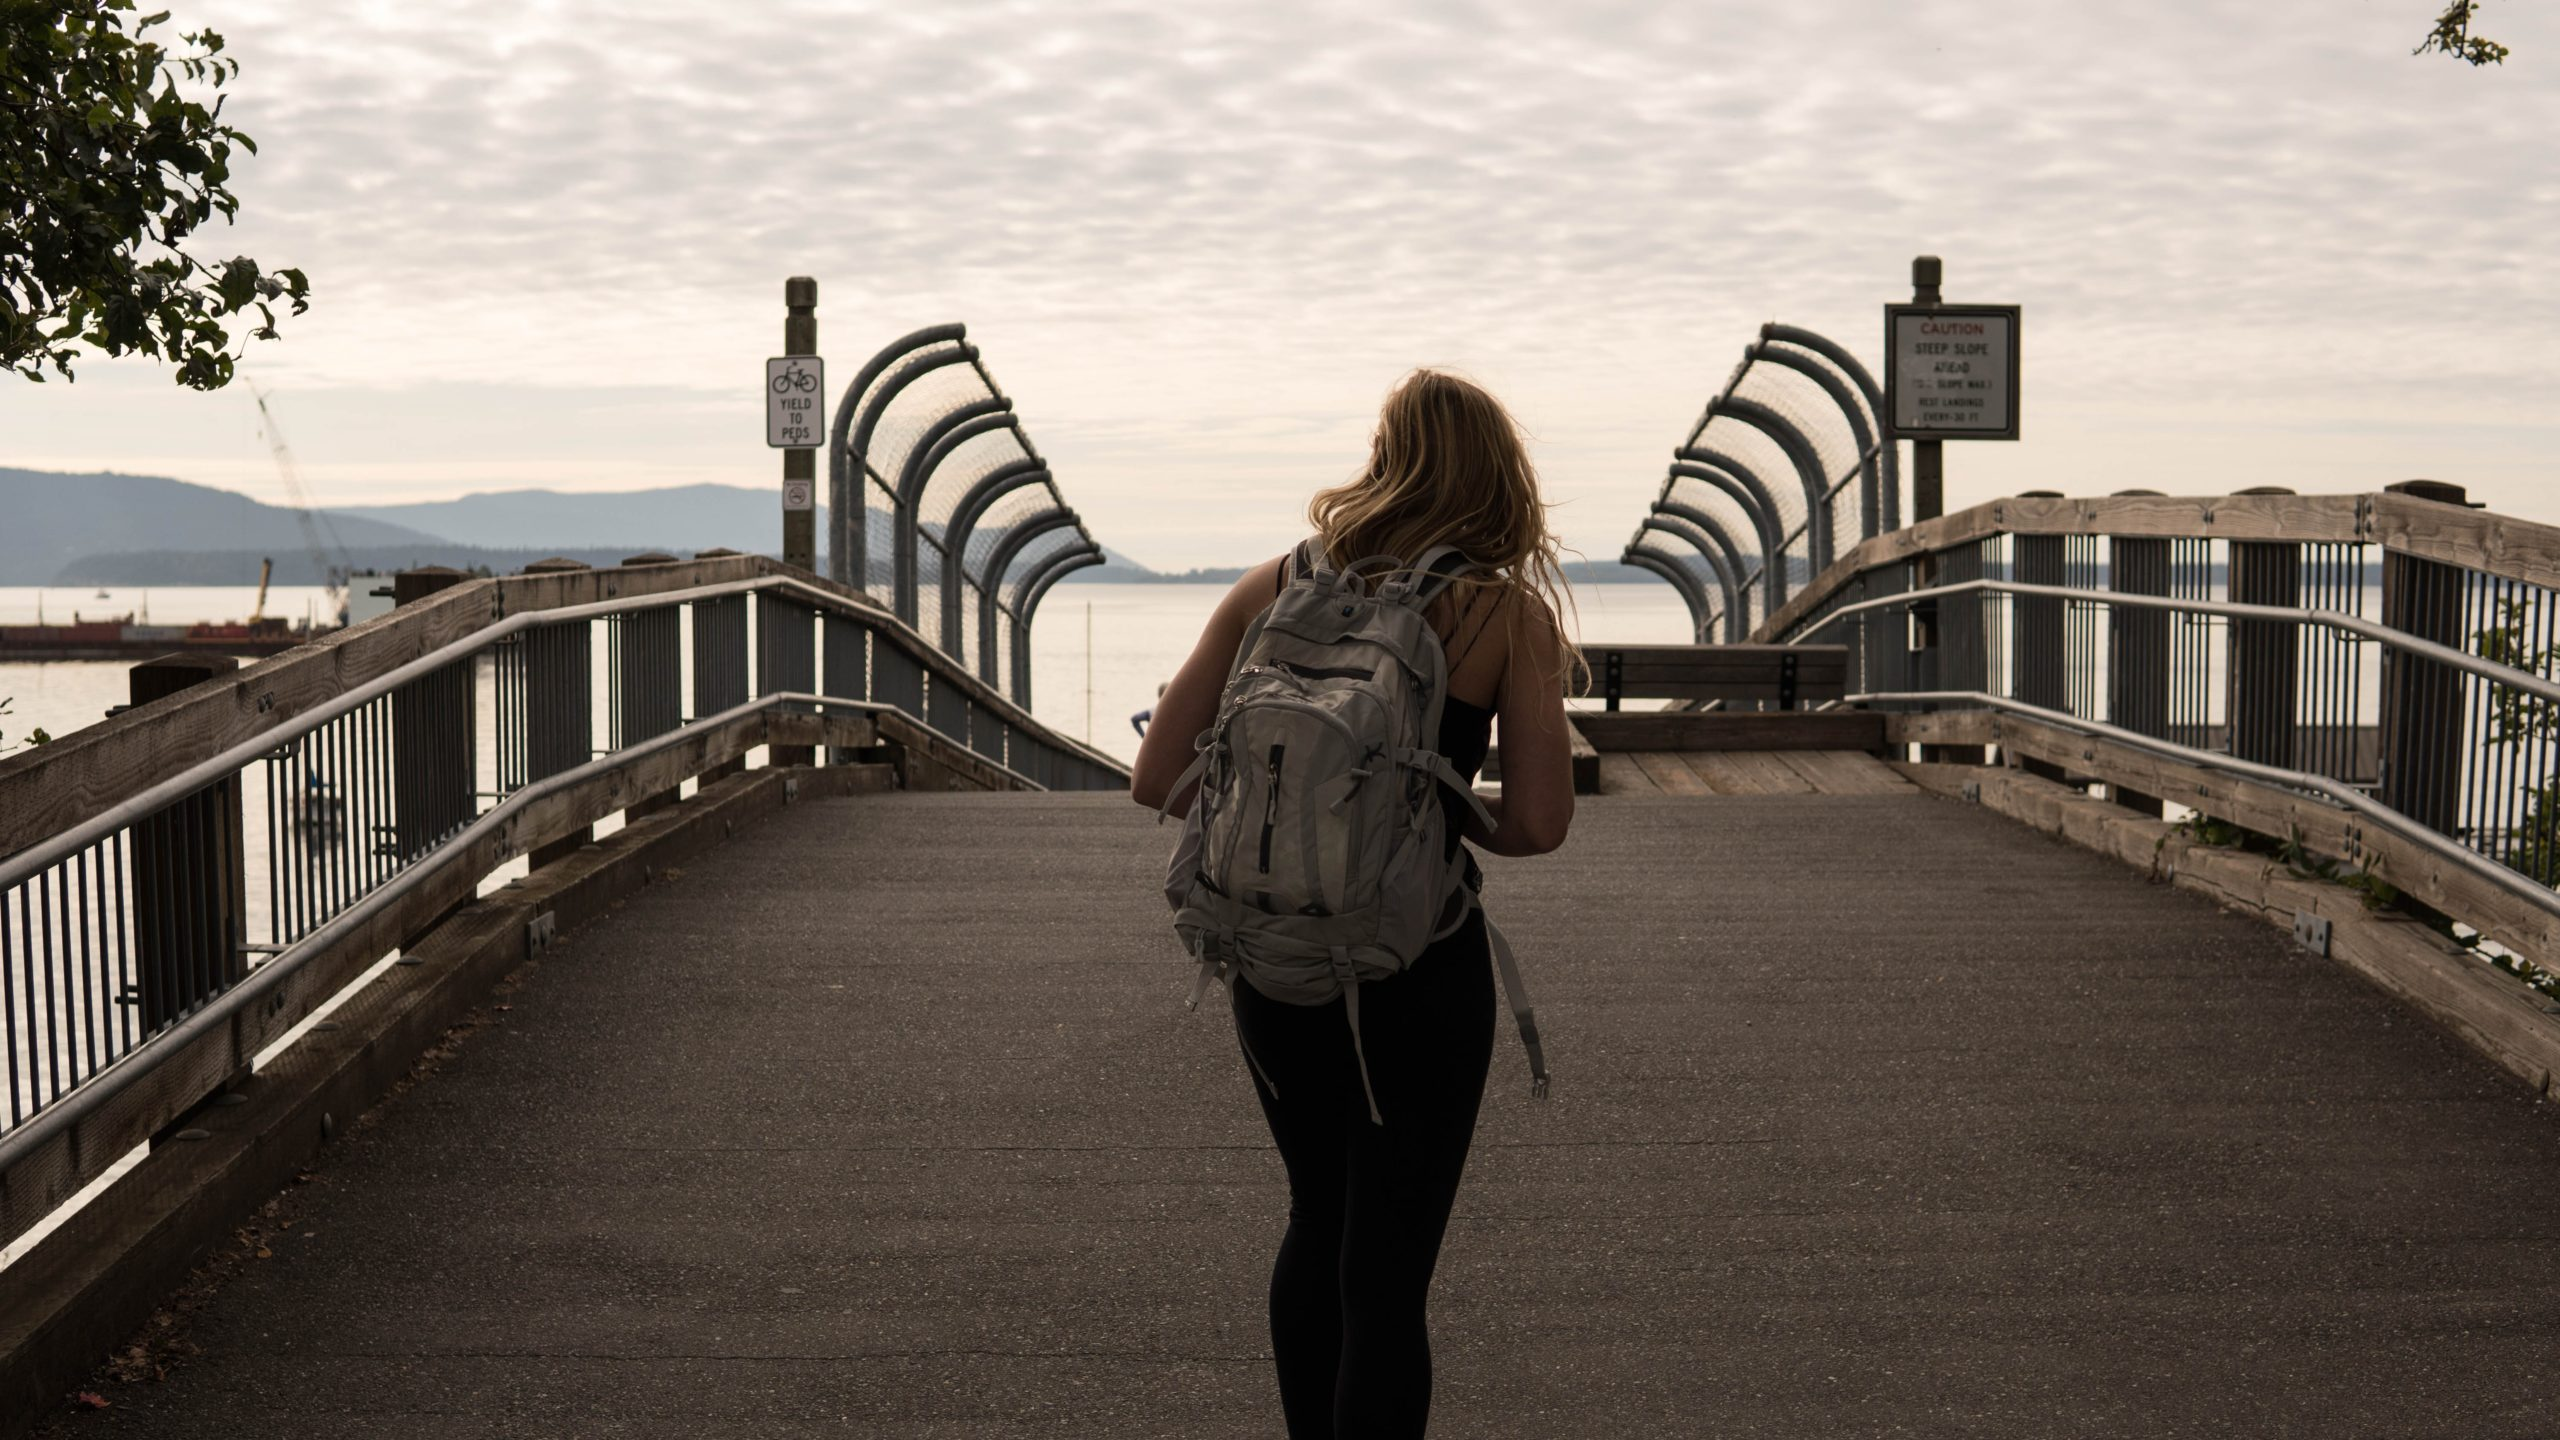 Getting the Right Backpack for Your Trip